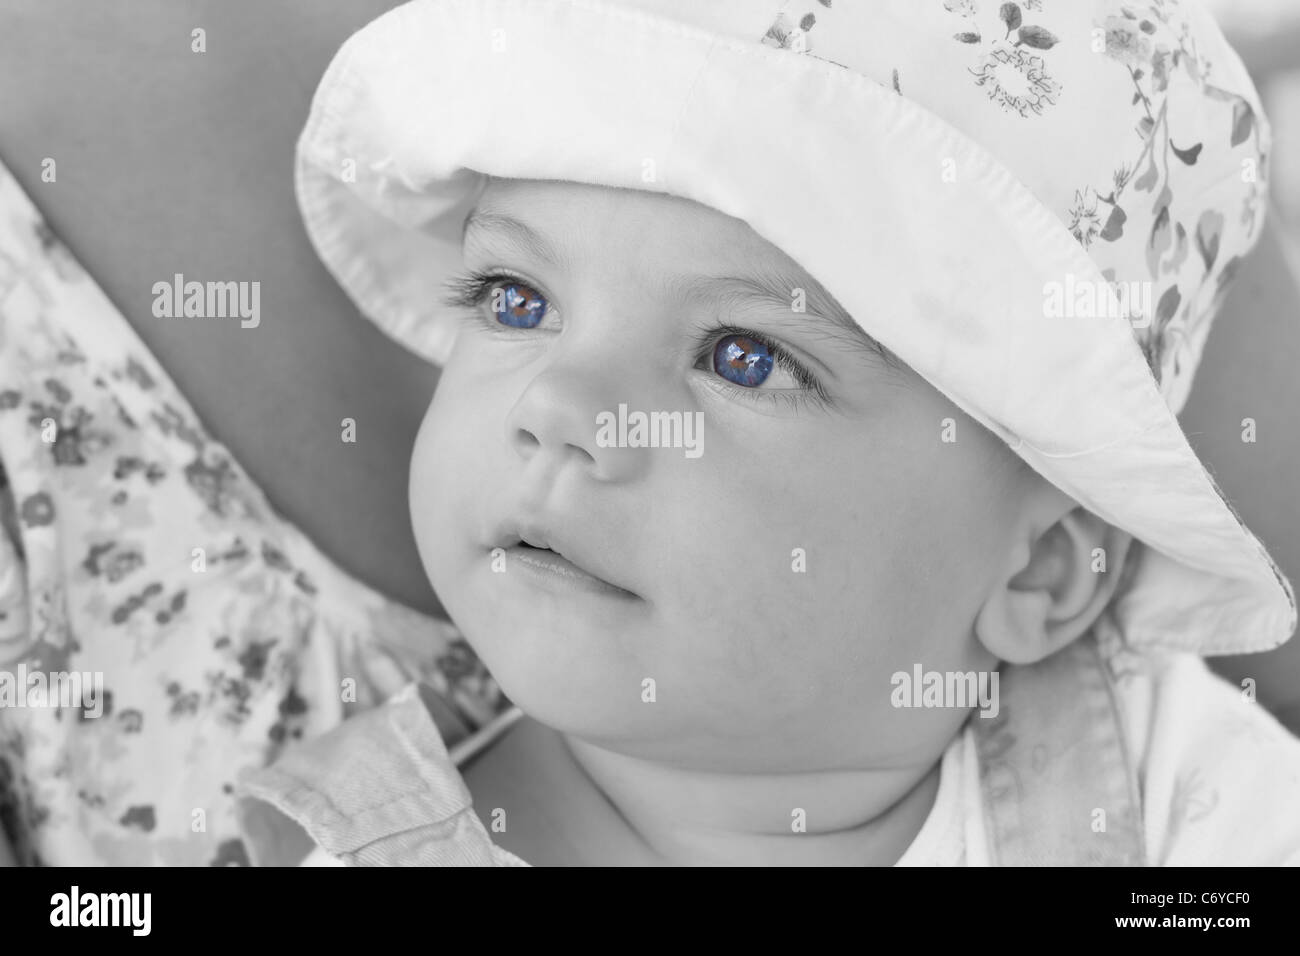 sweet baby girl with blue eyes stock photo: 38711204 - alamy